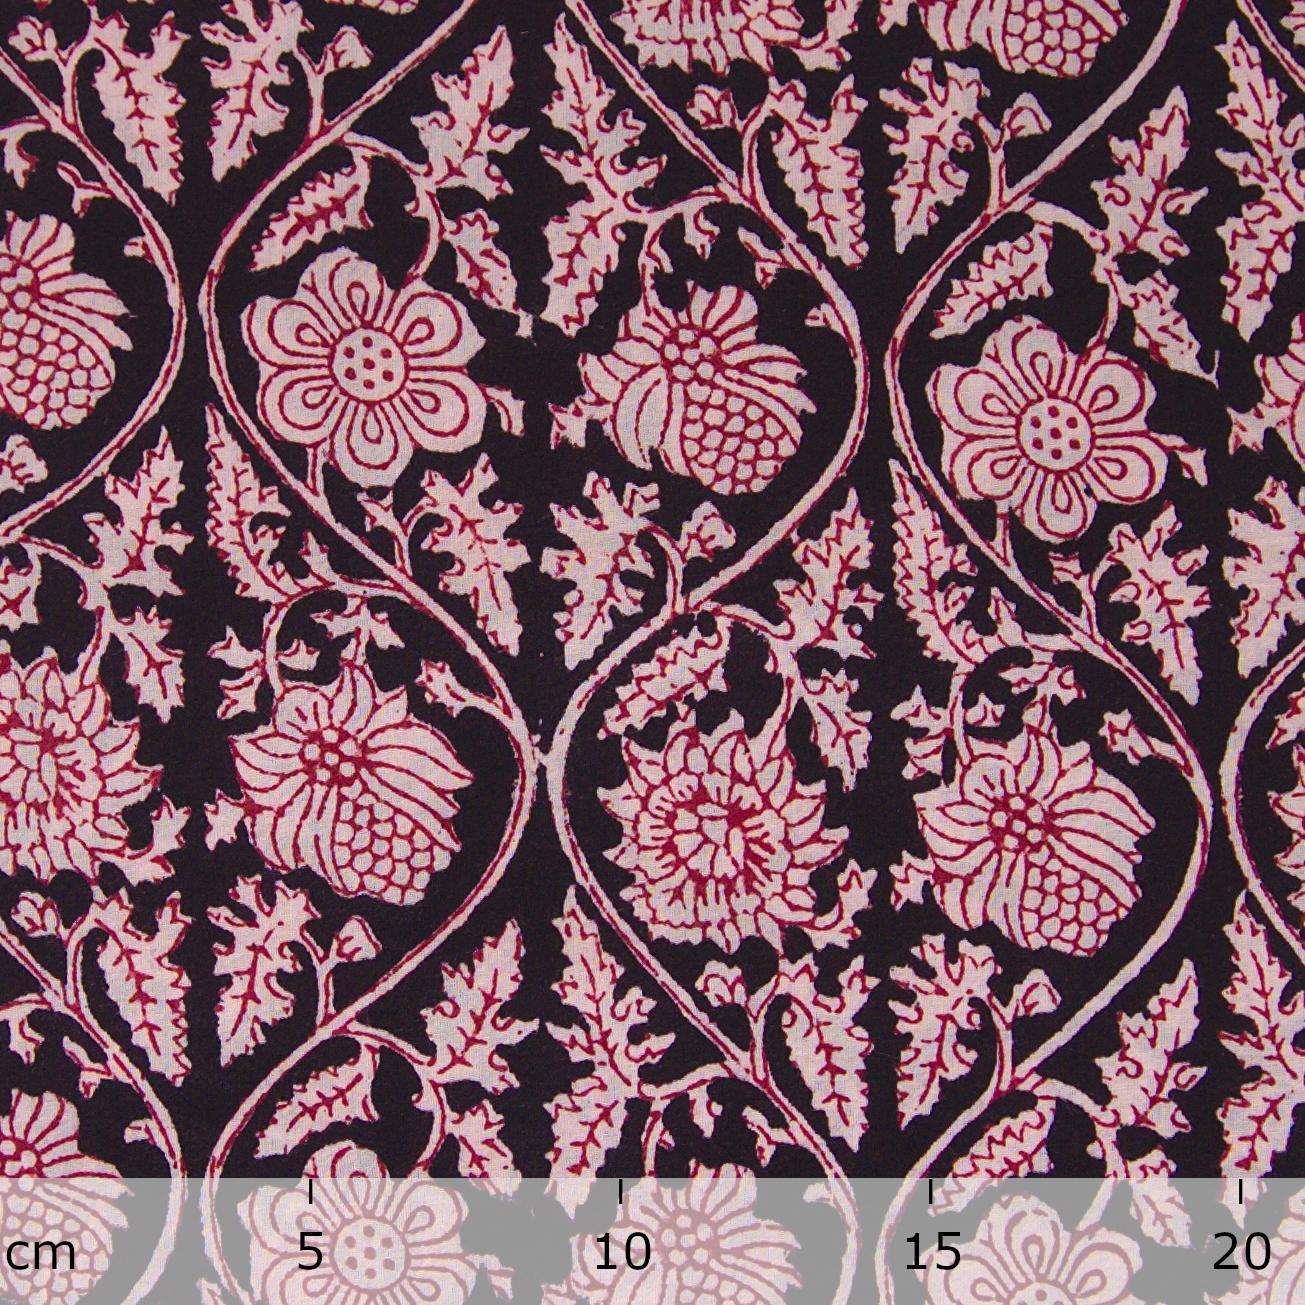 100% Block-Printed Cotton Fabric From India - Vinea Design - Iron Rust Black & Alizarin Red Dyes - Ruler - Live